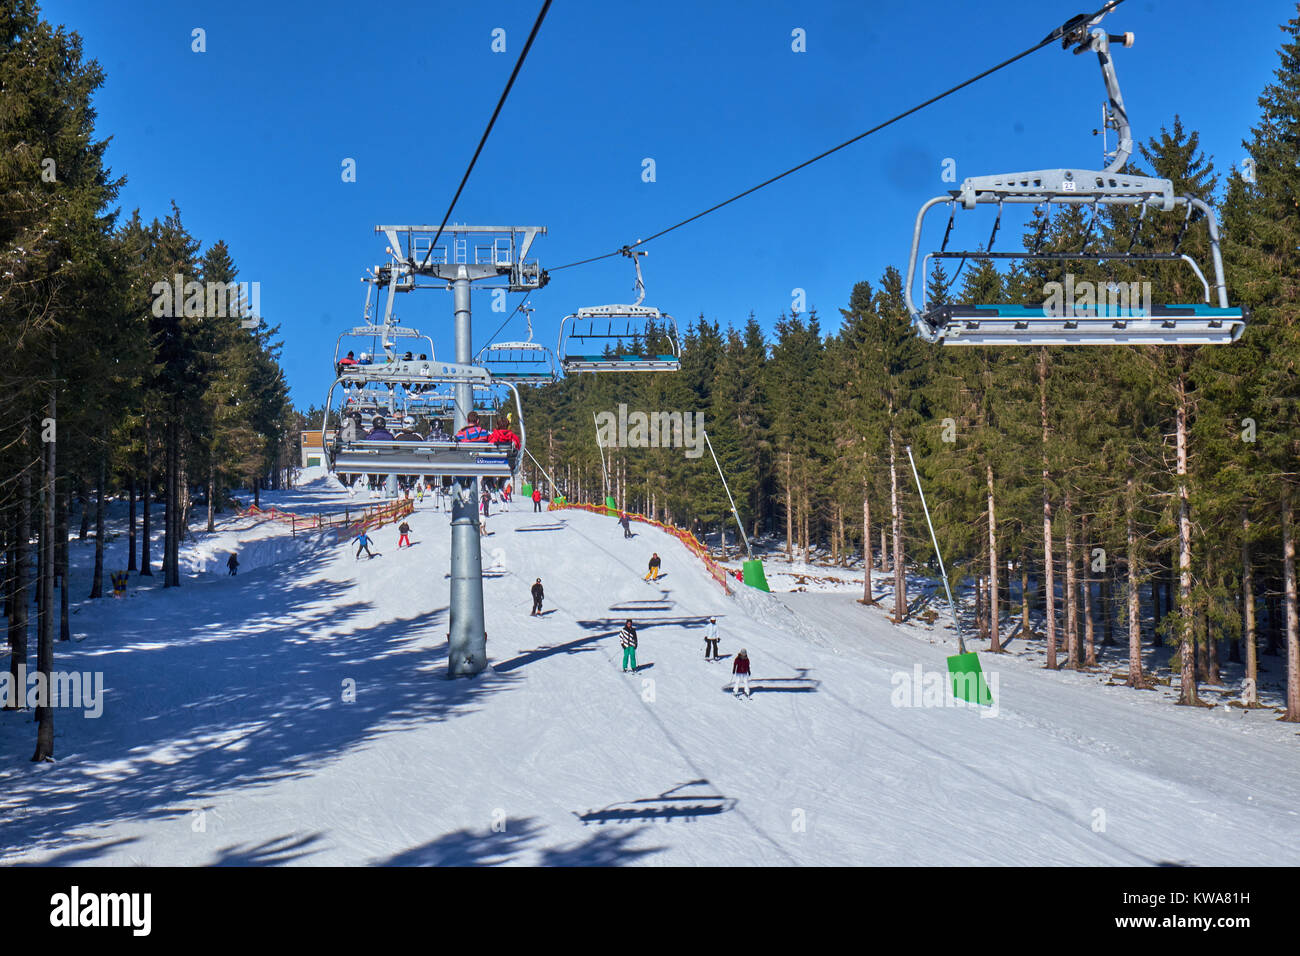 WINTERBERG, GERMANY - FEBRUARY 14, 2017: People on skis seen from up high in a chairlift at Ski Carousel Winterberg - Stock Image